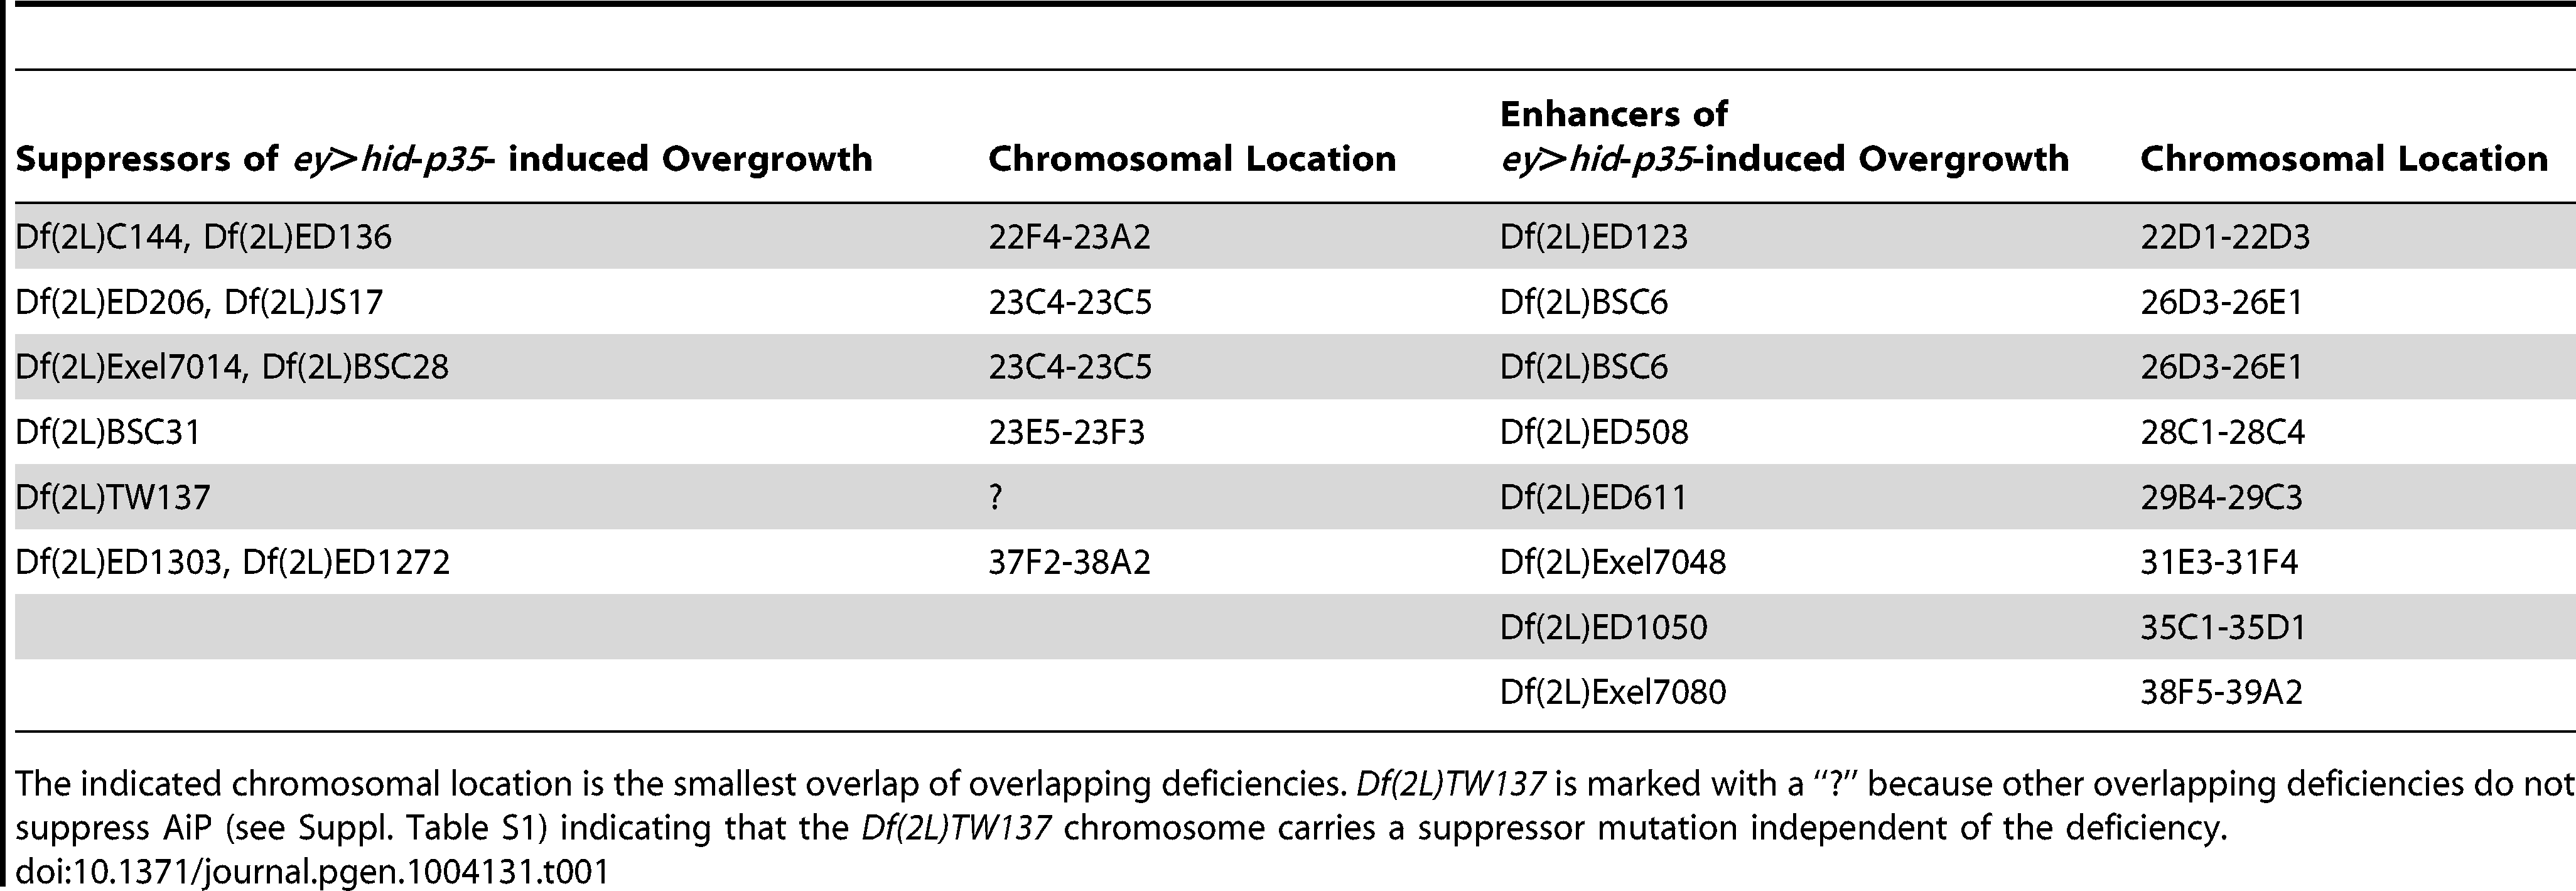 Deficiencies that modify the <i>ey>hid-p35</i>-induced AiP phenotype as suppressors or enhancers.